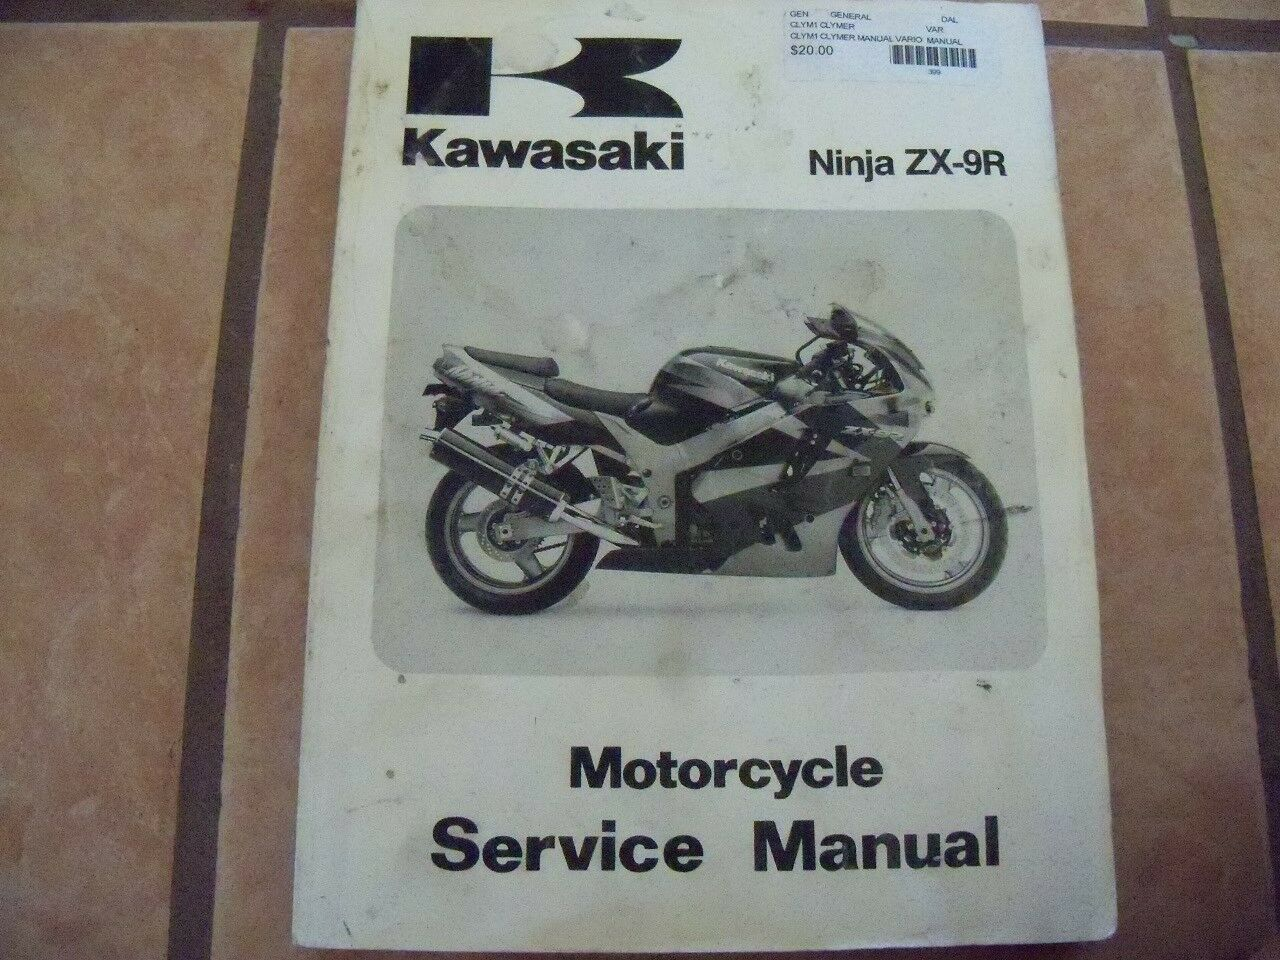 Genuine Kawasaki Ninja ZX-9R Motorcycle Service Manual 1 of 2Only 1  available ...